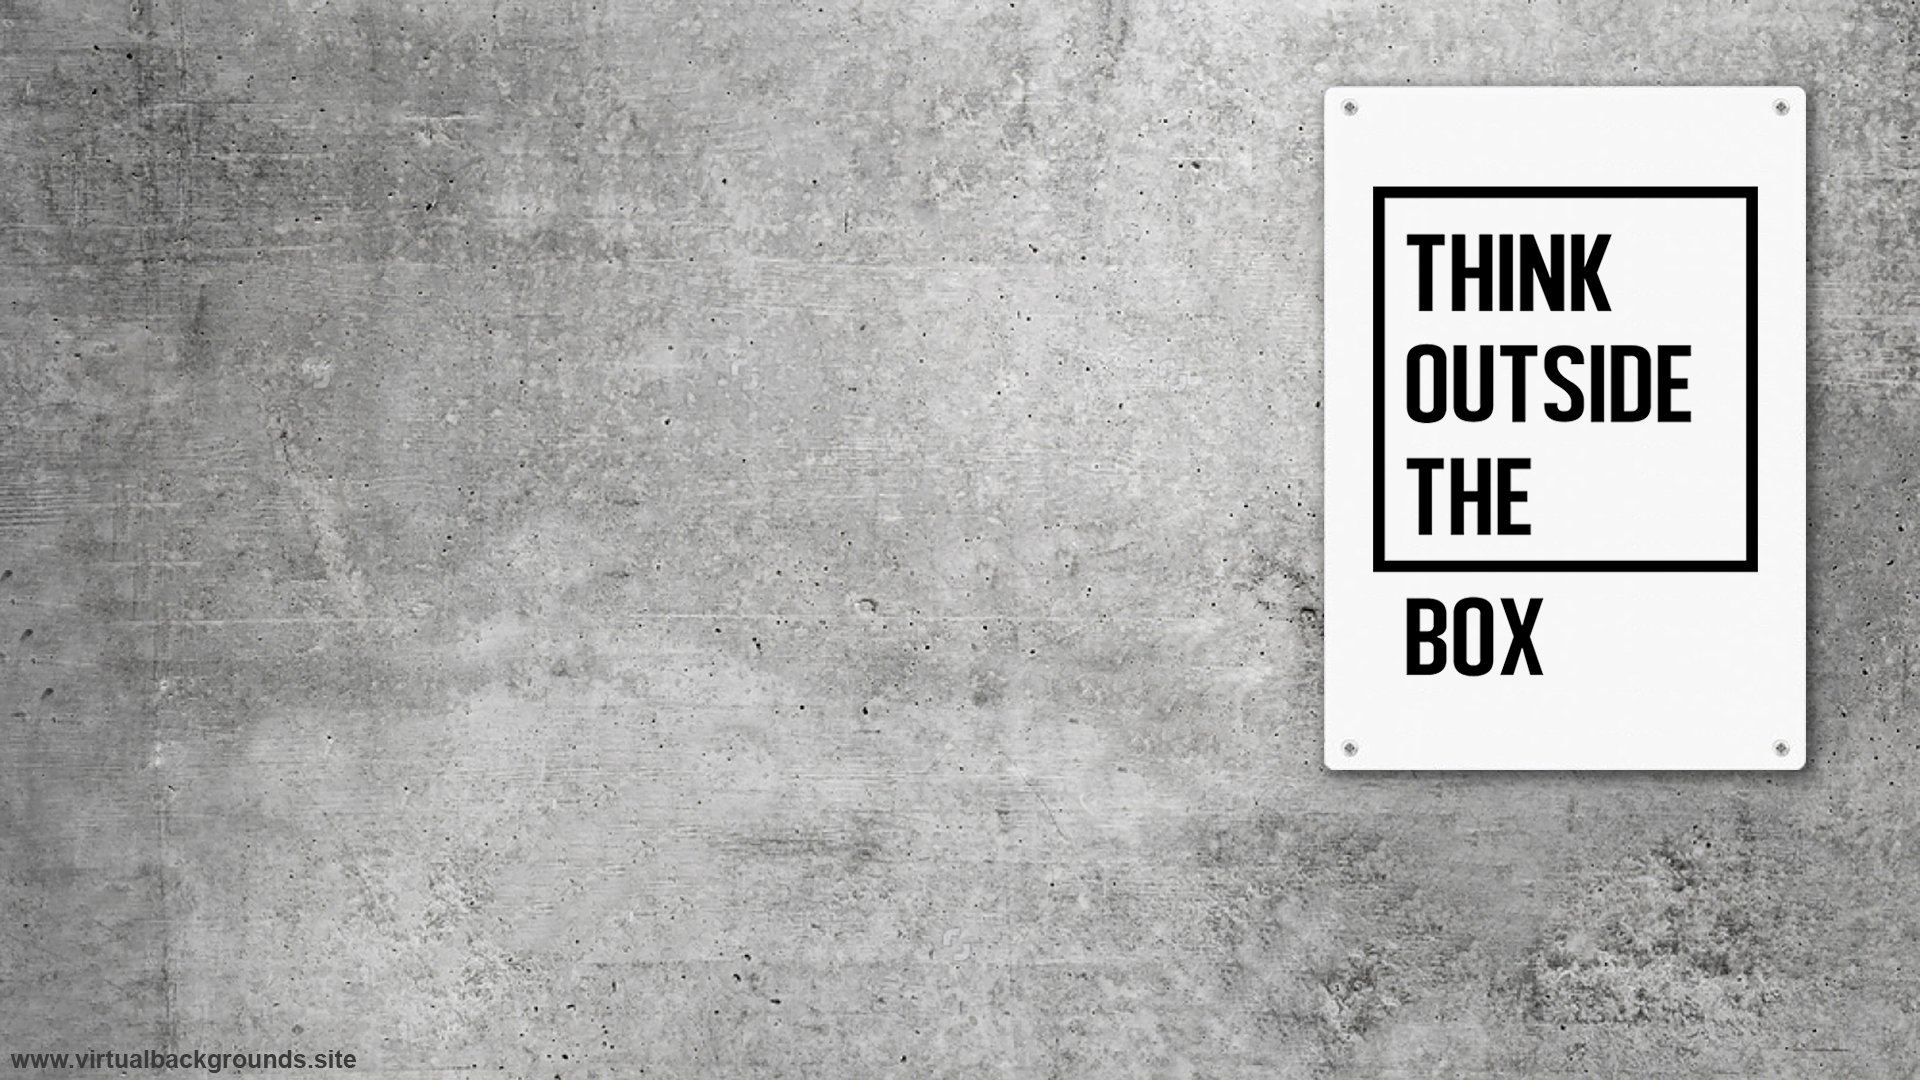 Think outside the box plaque. Virtual background to use on Zoom, Microsoft Teams, Skype, Google Meet, WebEx or any other compatible app.